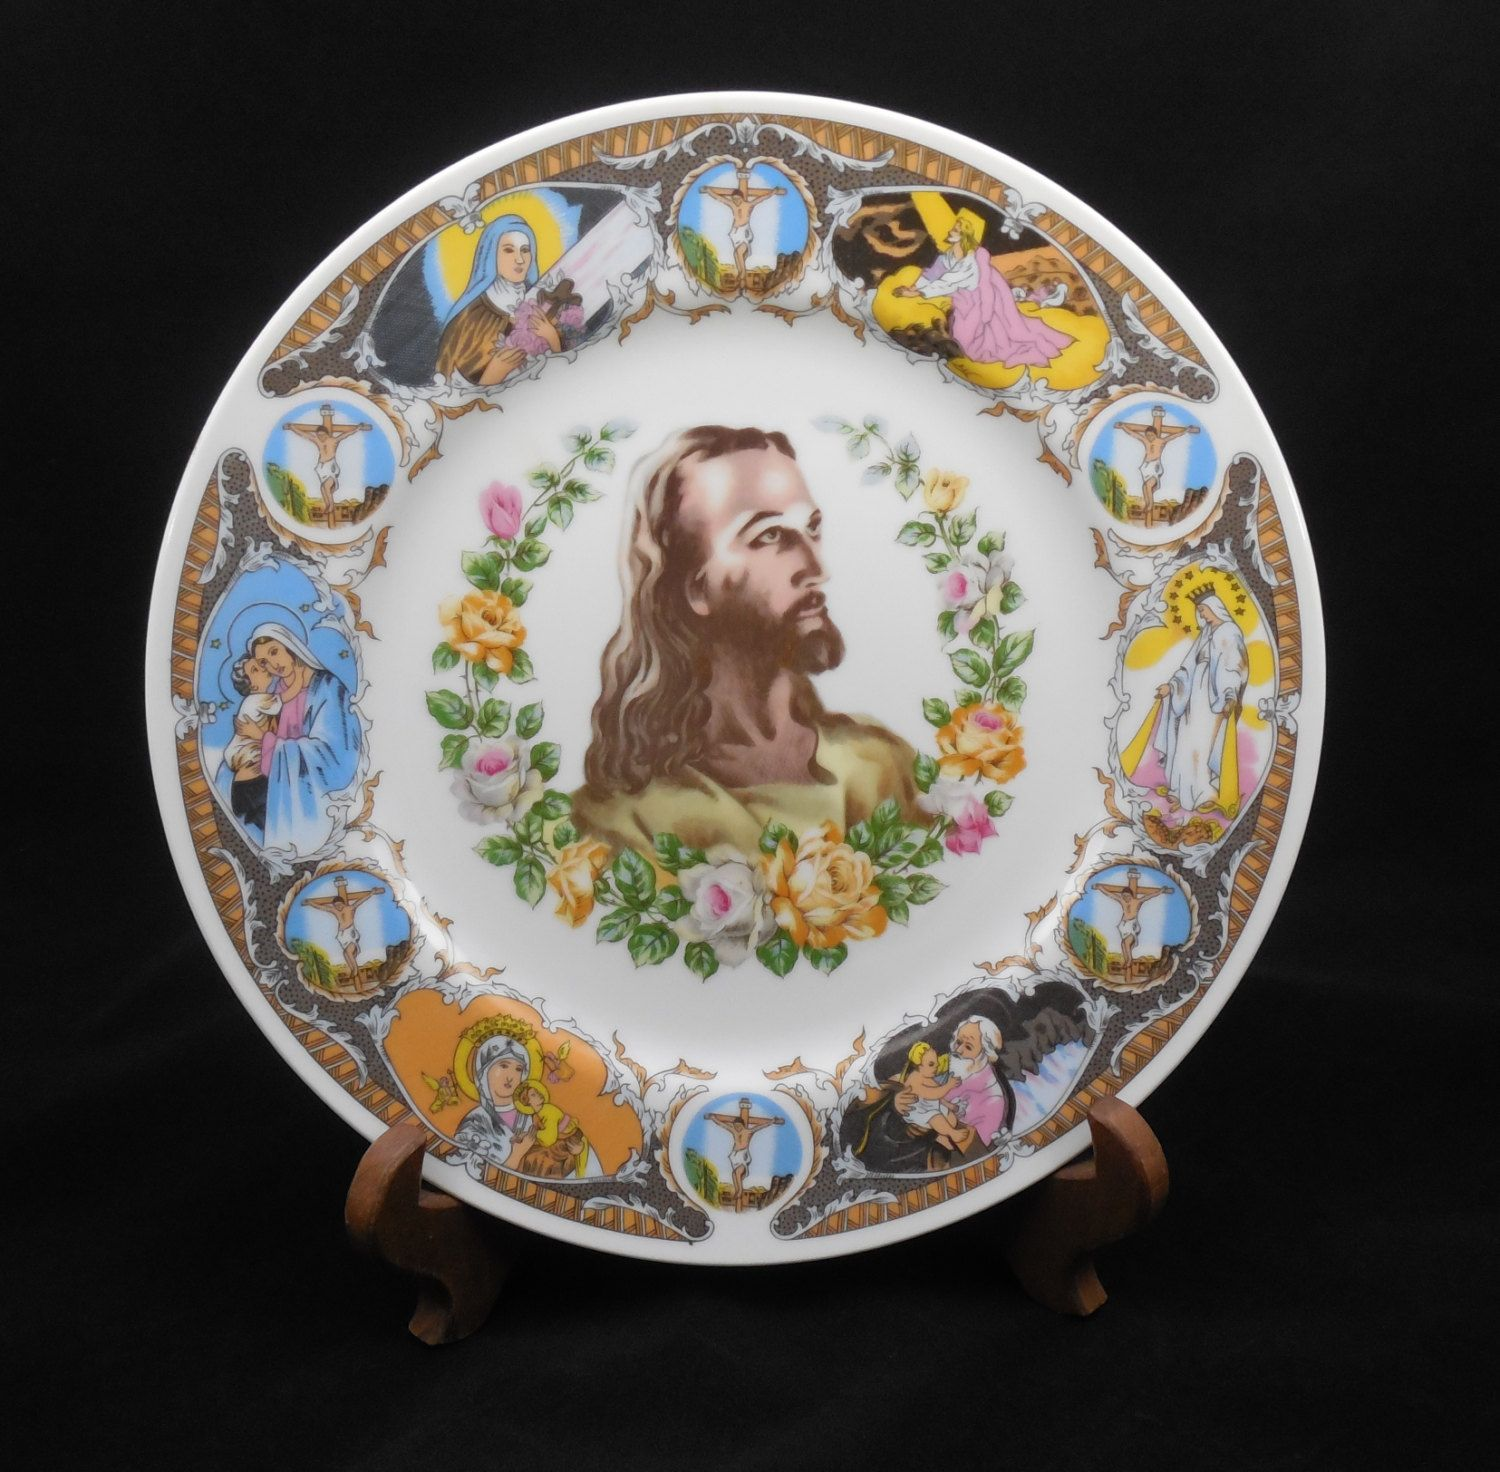 Ceramic Jesus Plate Vintage Christian or Religious Collector Plate Life of Jesus Plate Display of Jesus Plate Stand not Included by ShellyisVintage on ... & Ceramic Jesus Plate 10